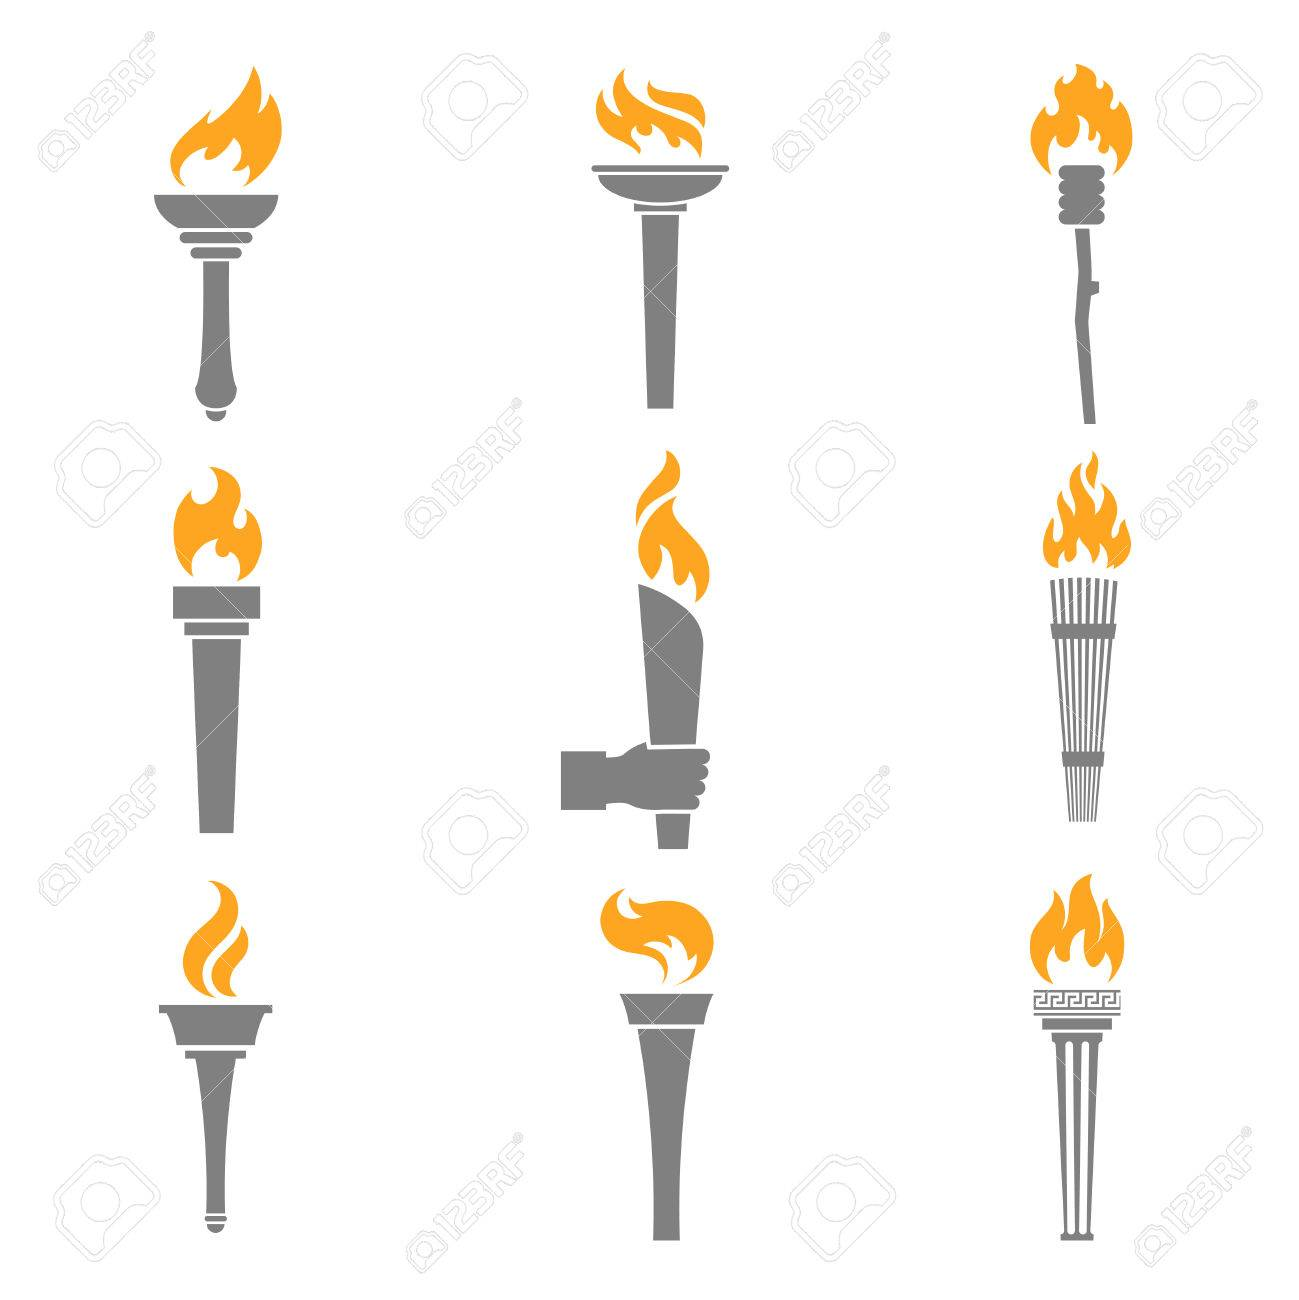 Fire torch victory champion flame icons set isolated vector illustration Stock Vector - 27942154